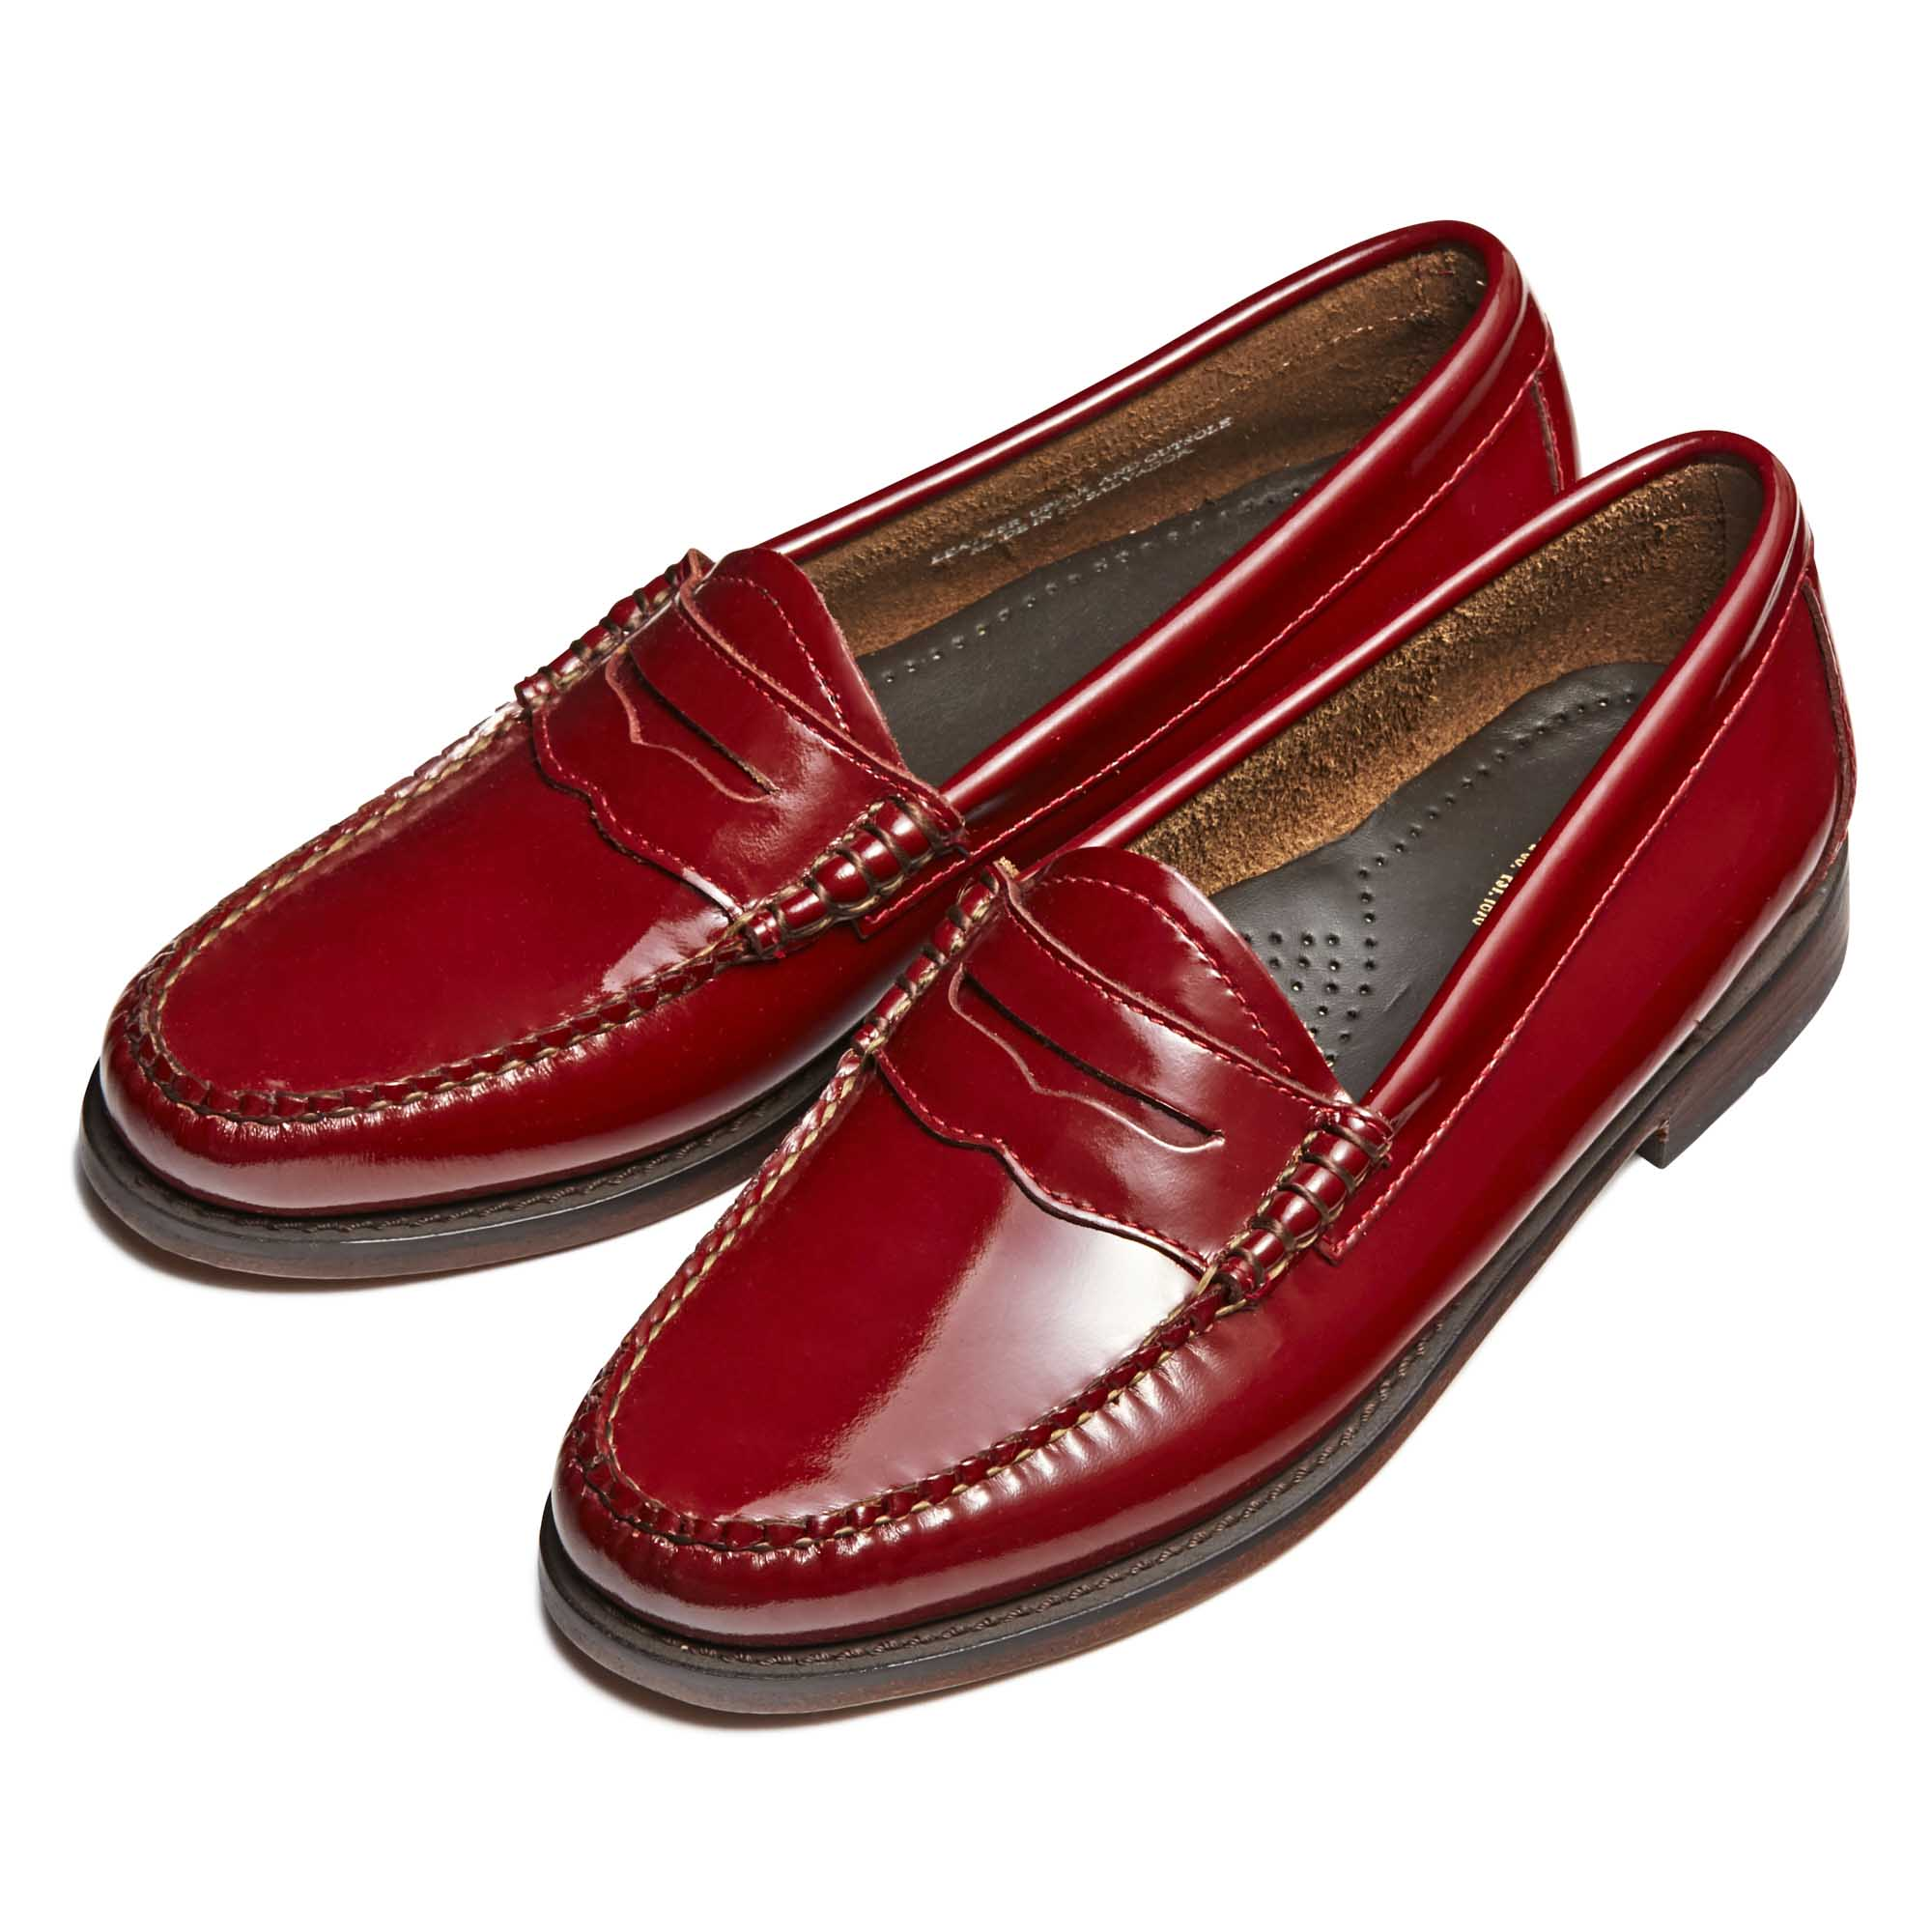 94010 / SPANISH RED PATENT (LEATHER SOLE)